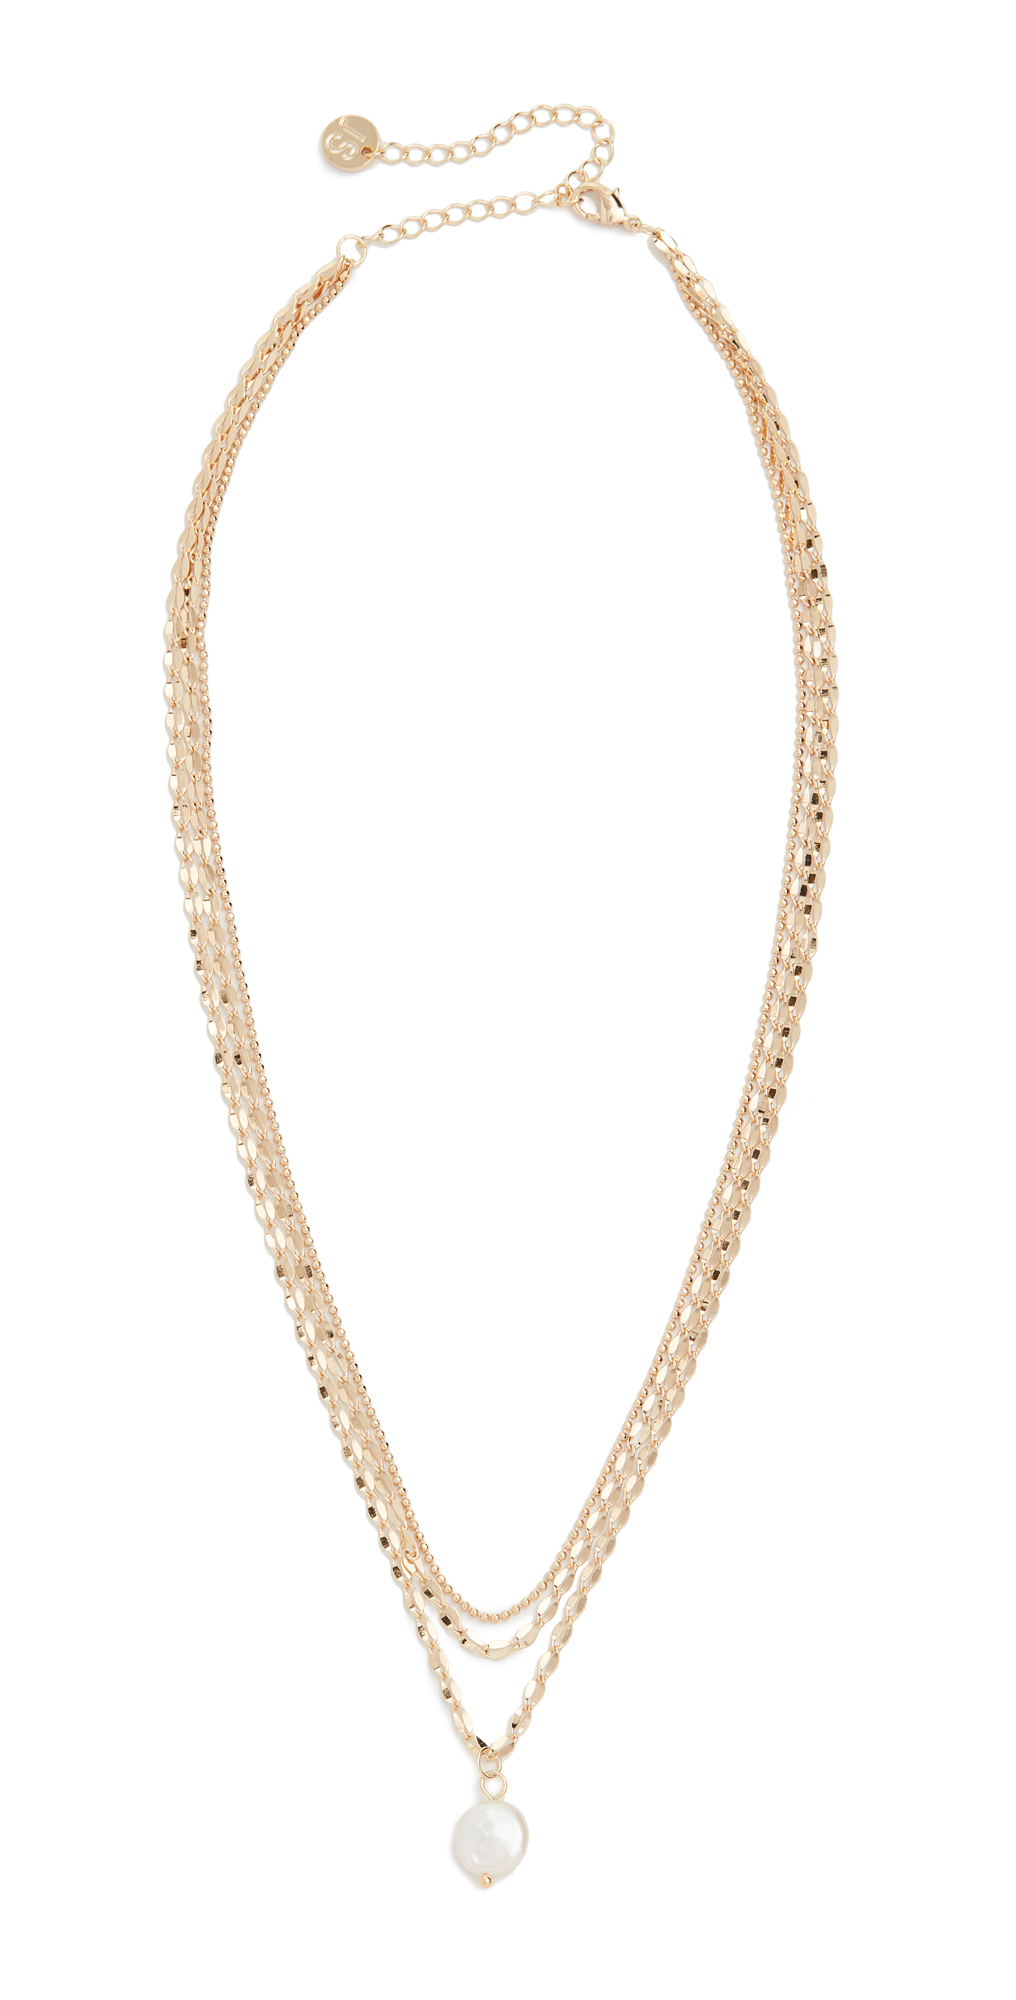 Layered Freshwater Pearl Mop Necklace